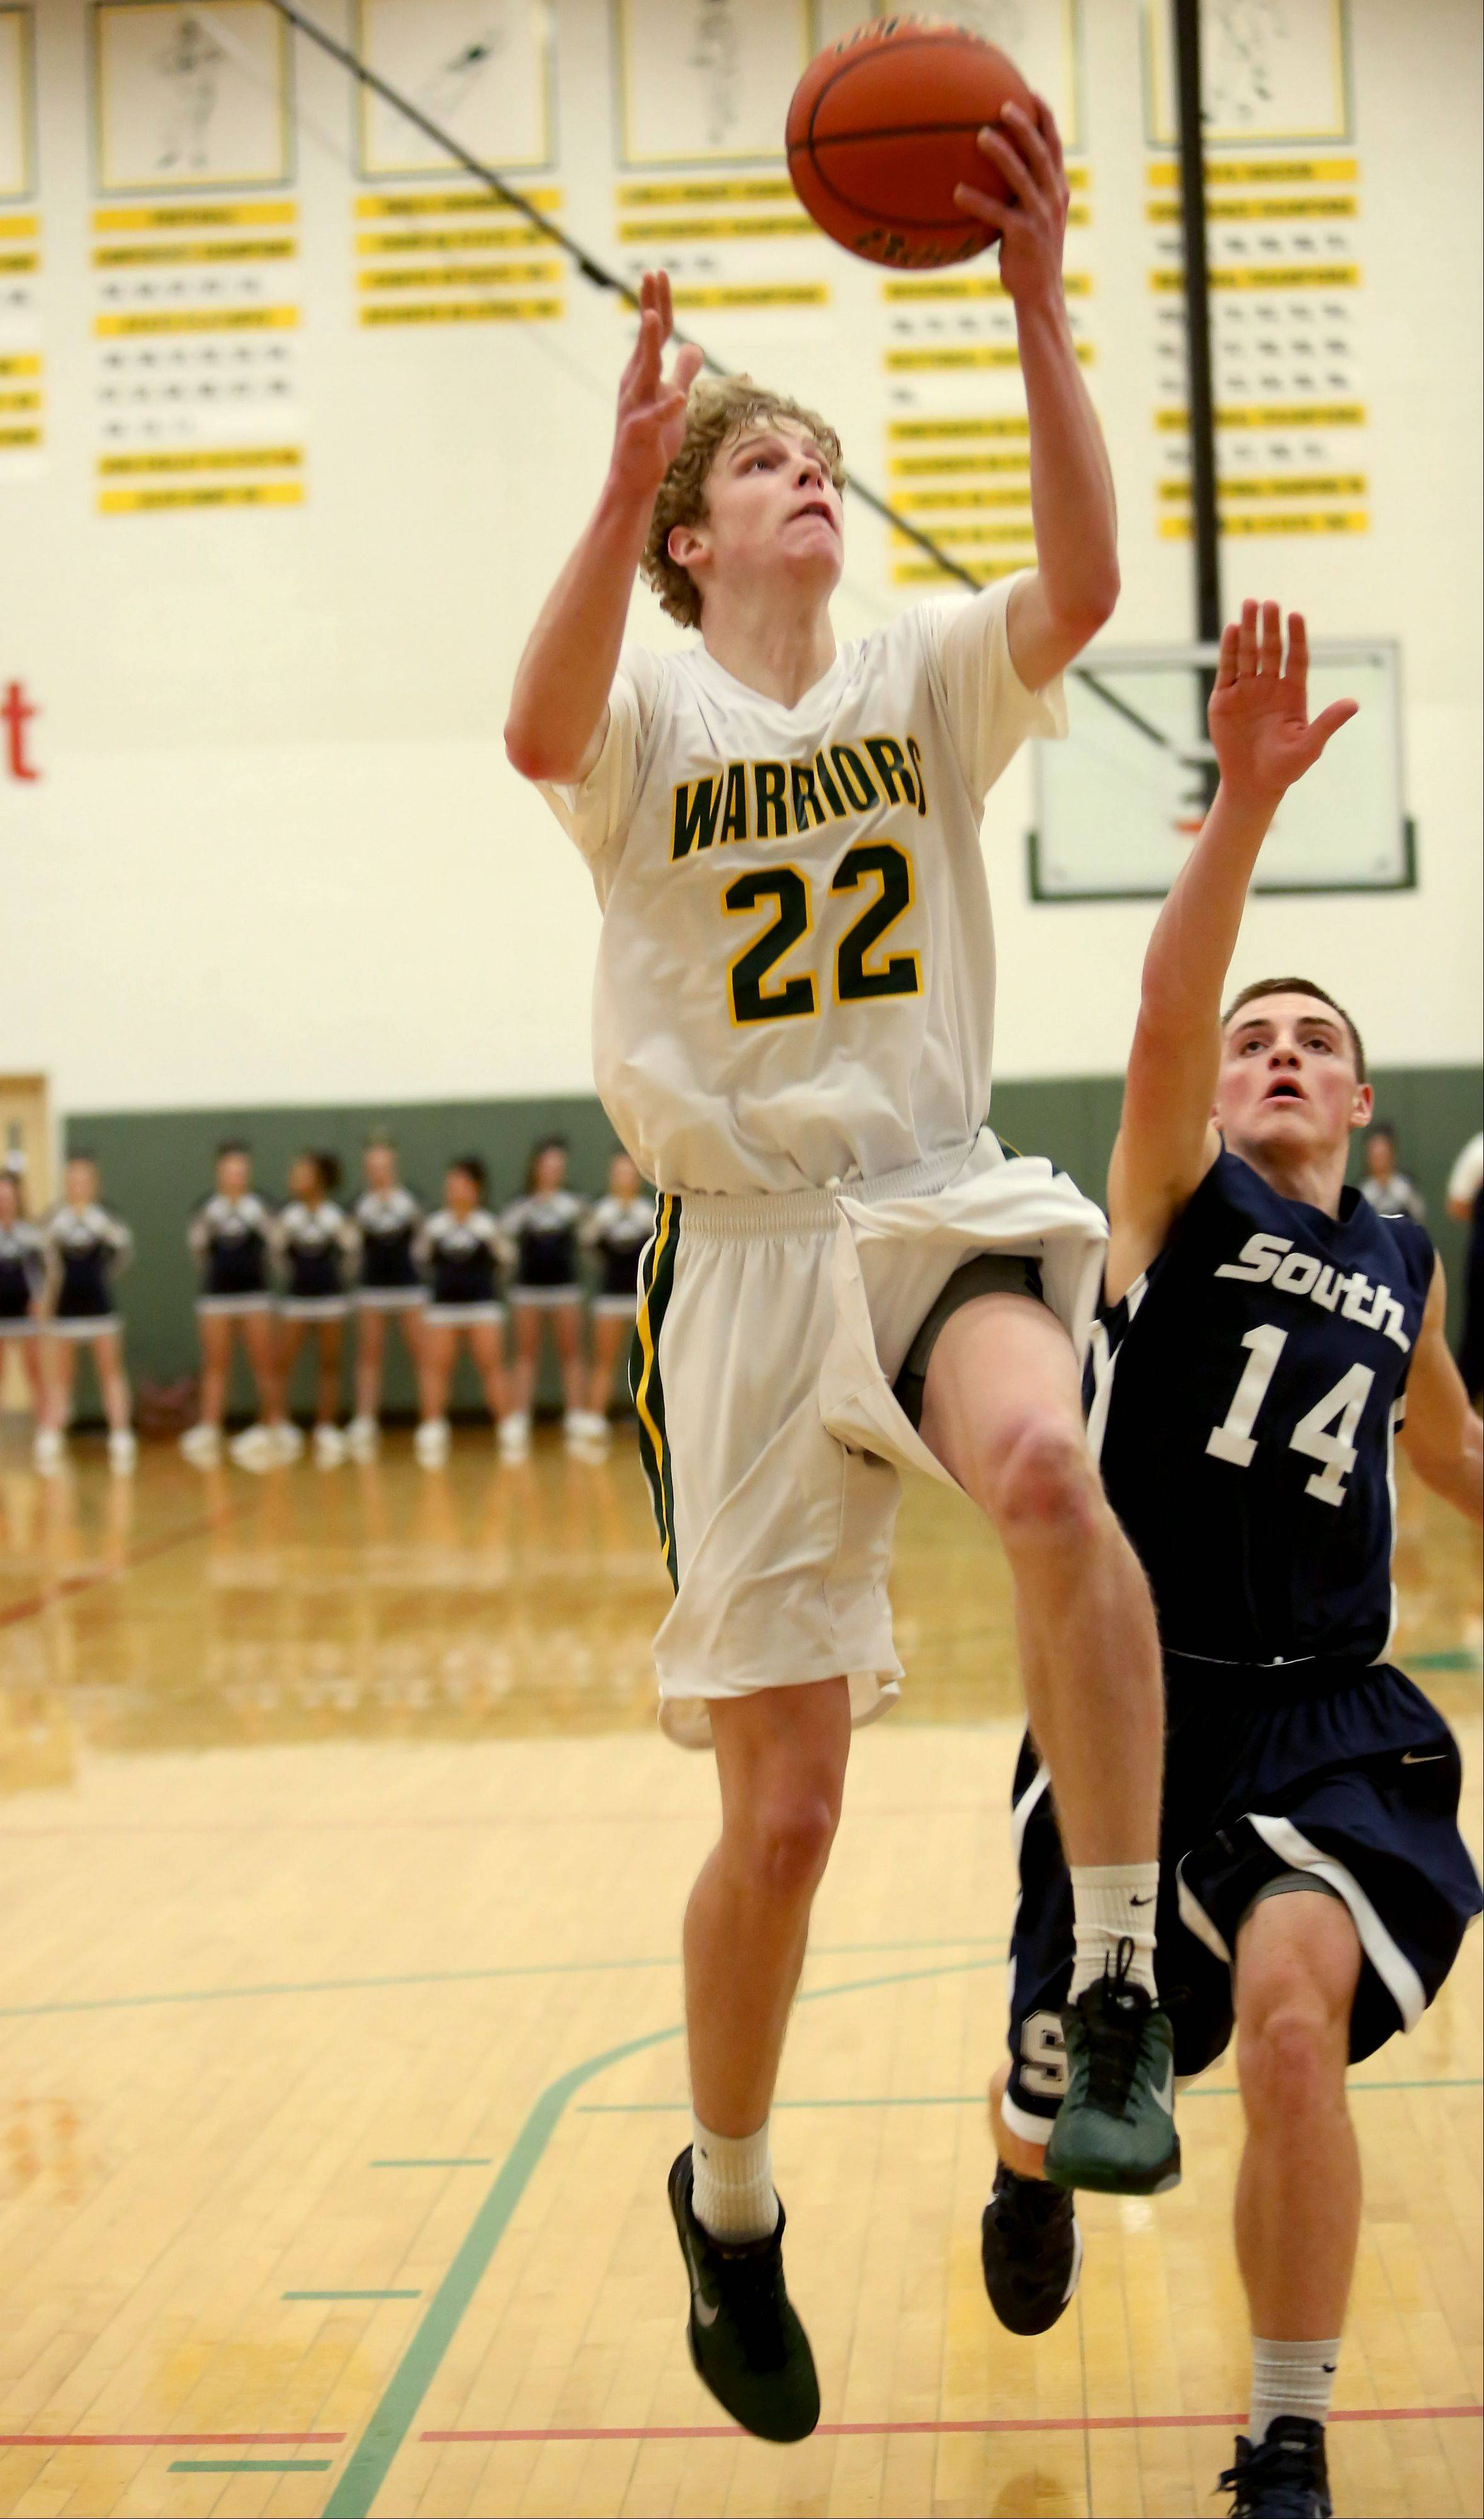 Jack Cordes of Waubonsie Valley, left, goes up for two points as Daylon Edwards ofPlainfield South defends in boys basketball action on Tuesday in Aurora.